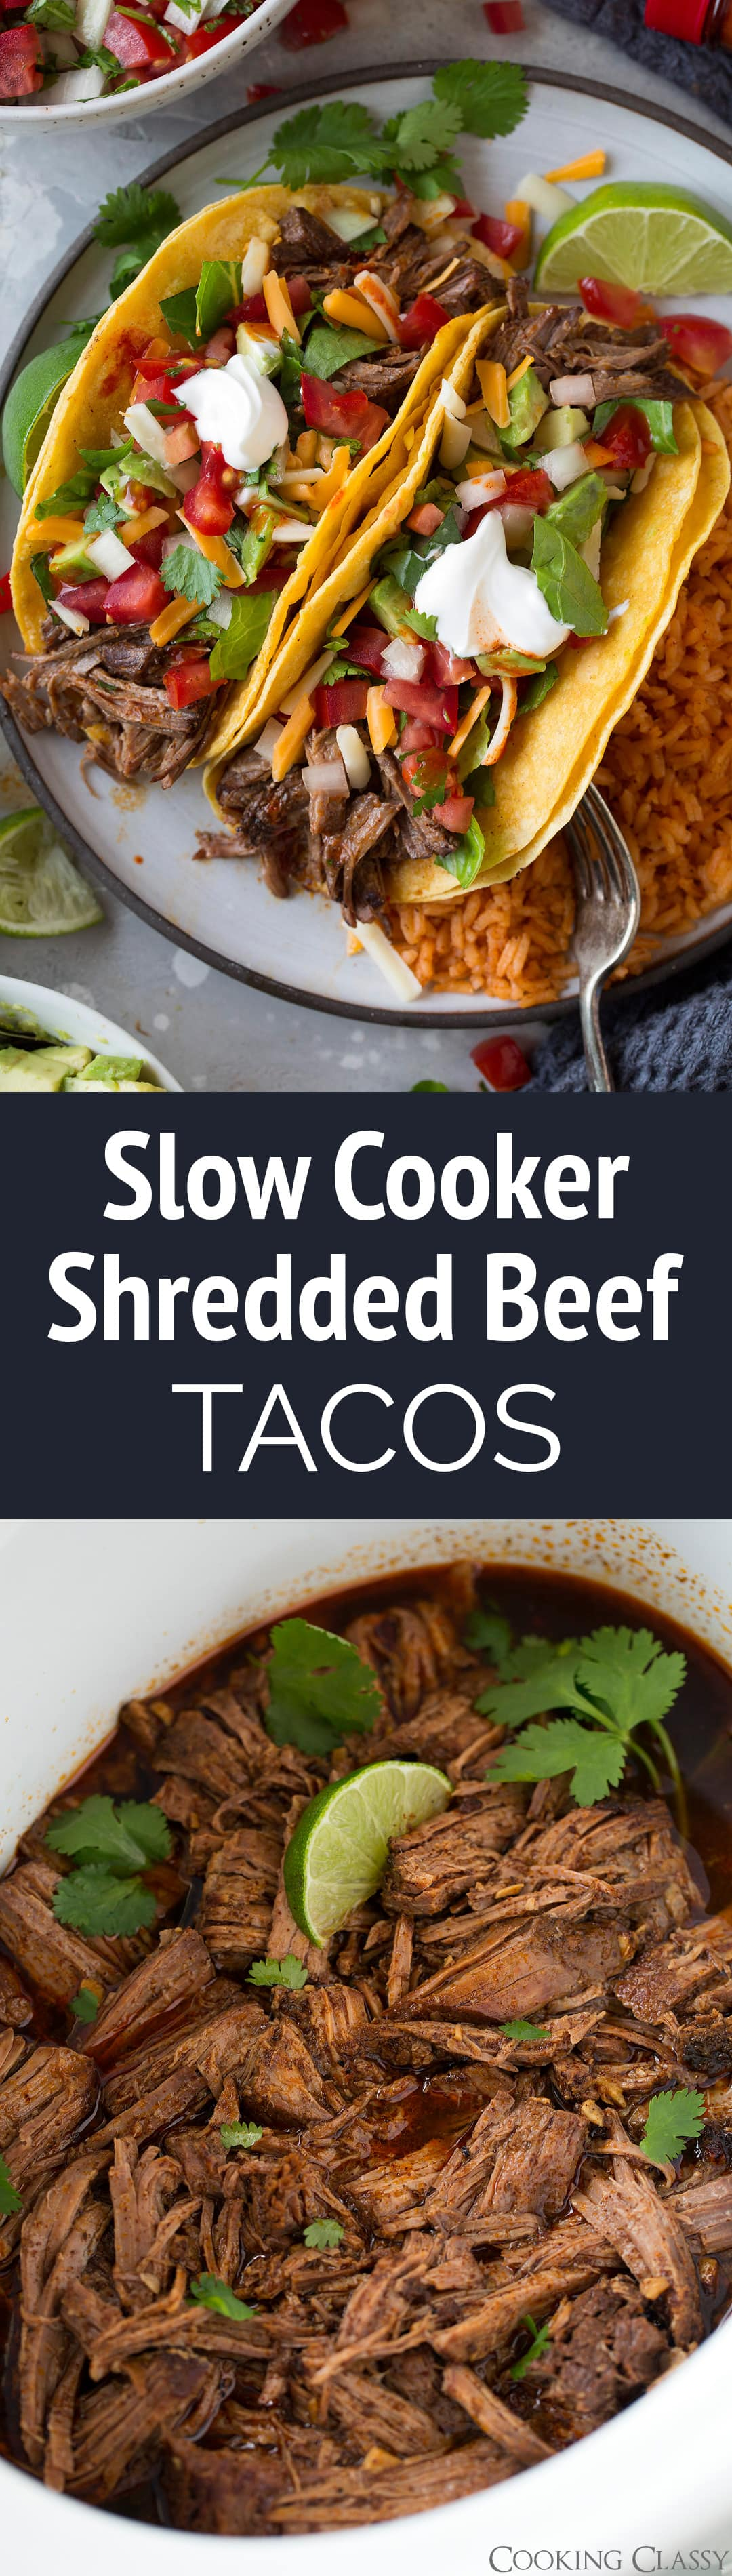 Slow Cooker Shredded Beef Tacos - These are the BEST! They've been a family favorite and a reader favorite for 5+ years! They're so easy to make and so flavorful! They taste just like the tacos you order at Mexican restaurants. The shredded beef makes great leftover too.